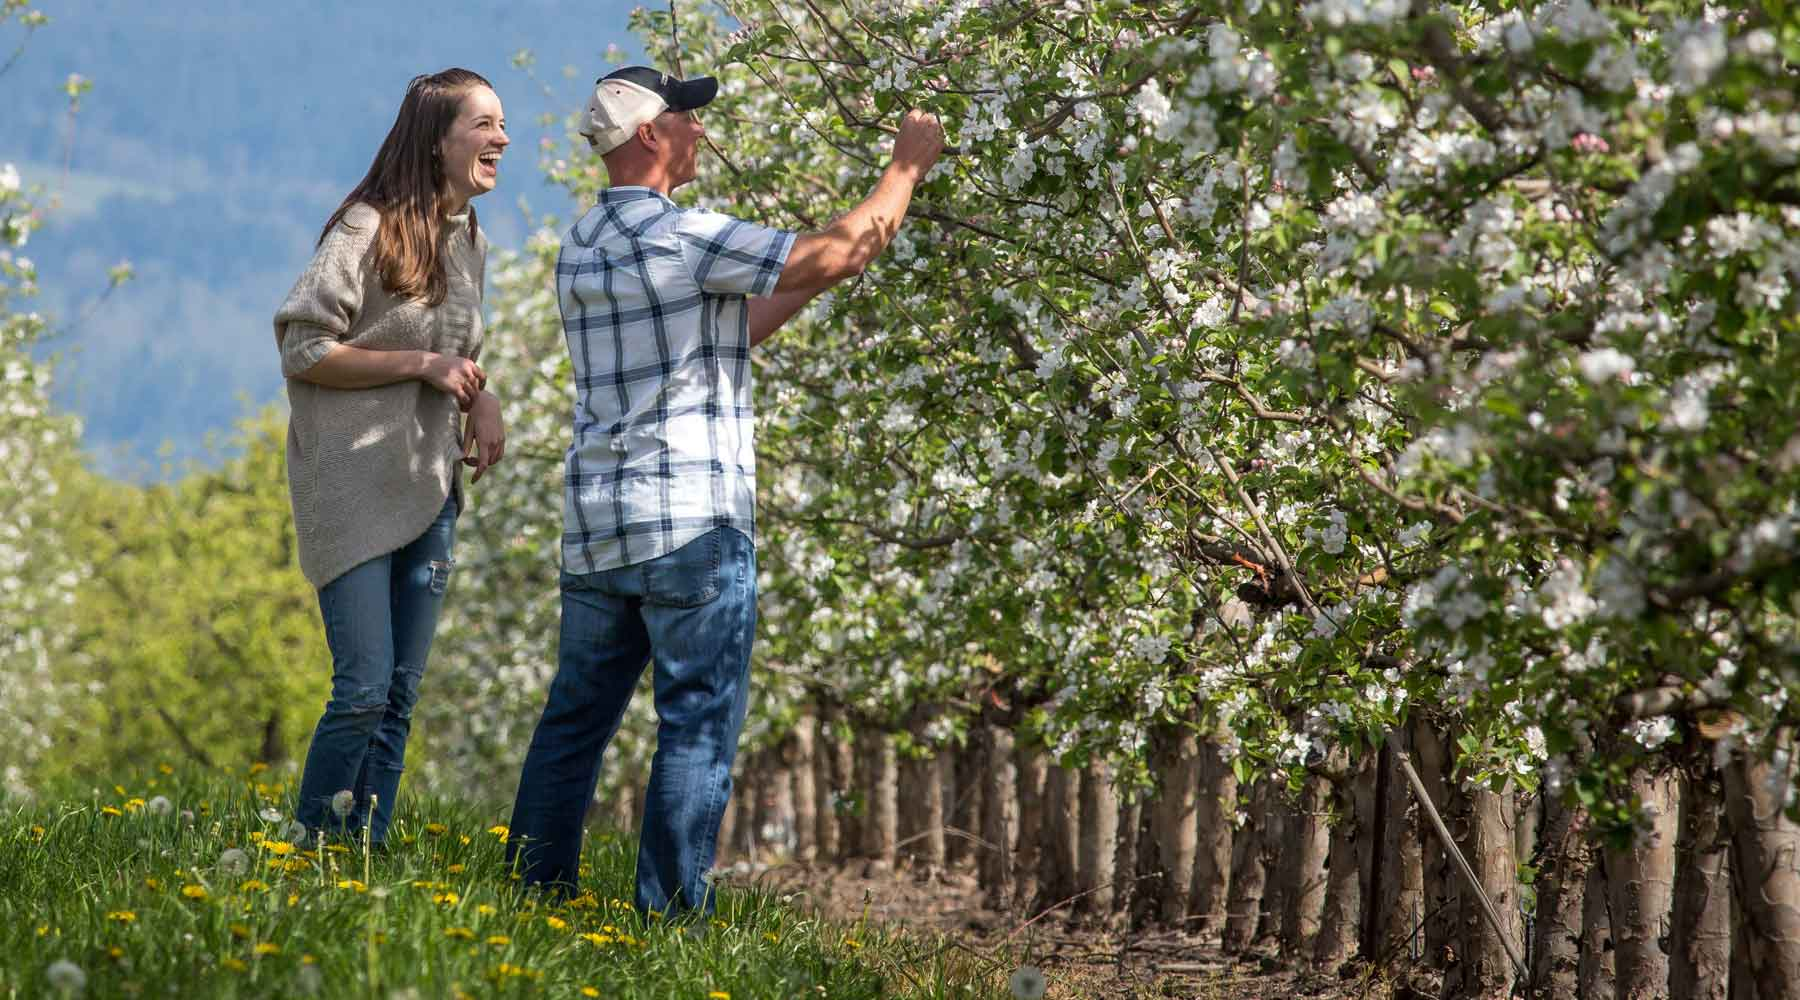 Founder Dave Gee in an Orchard Verifying NON GMO compliance